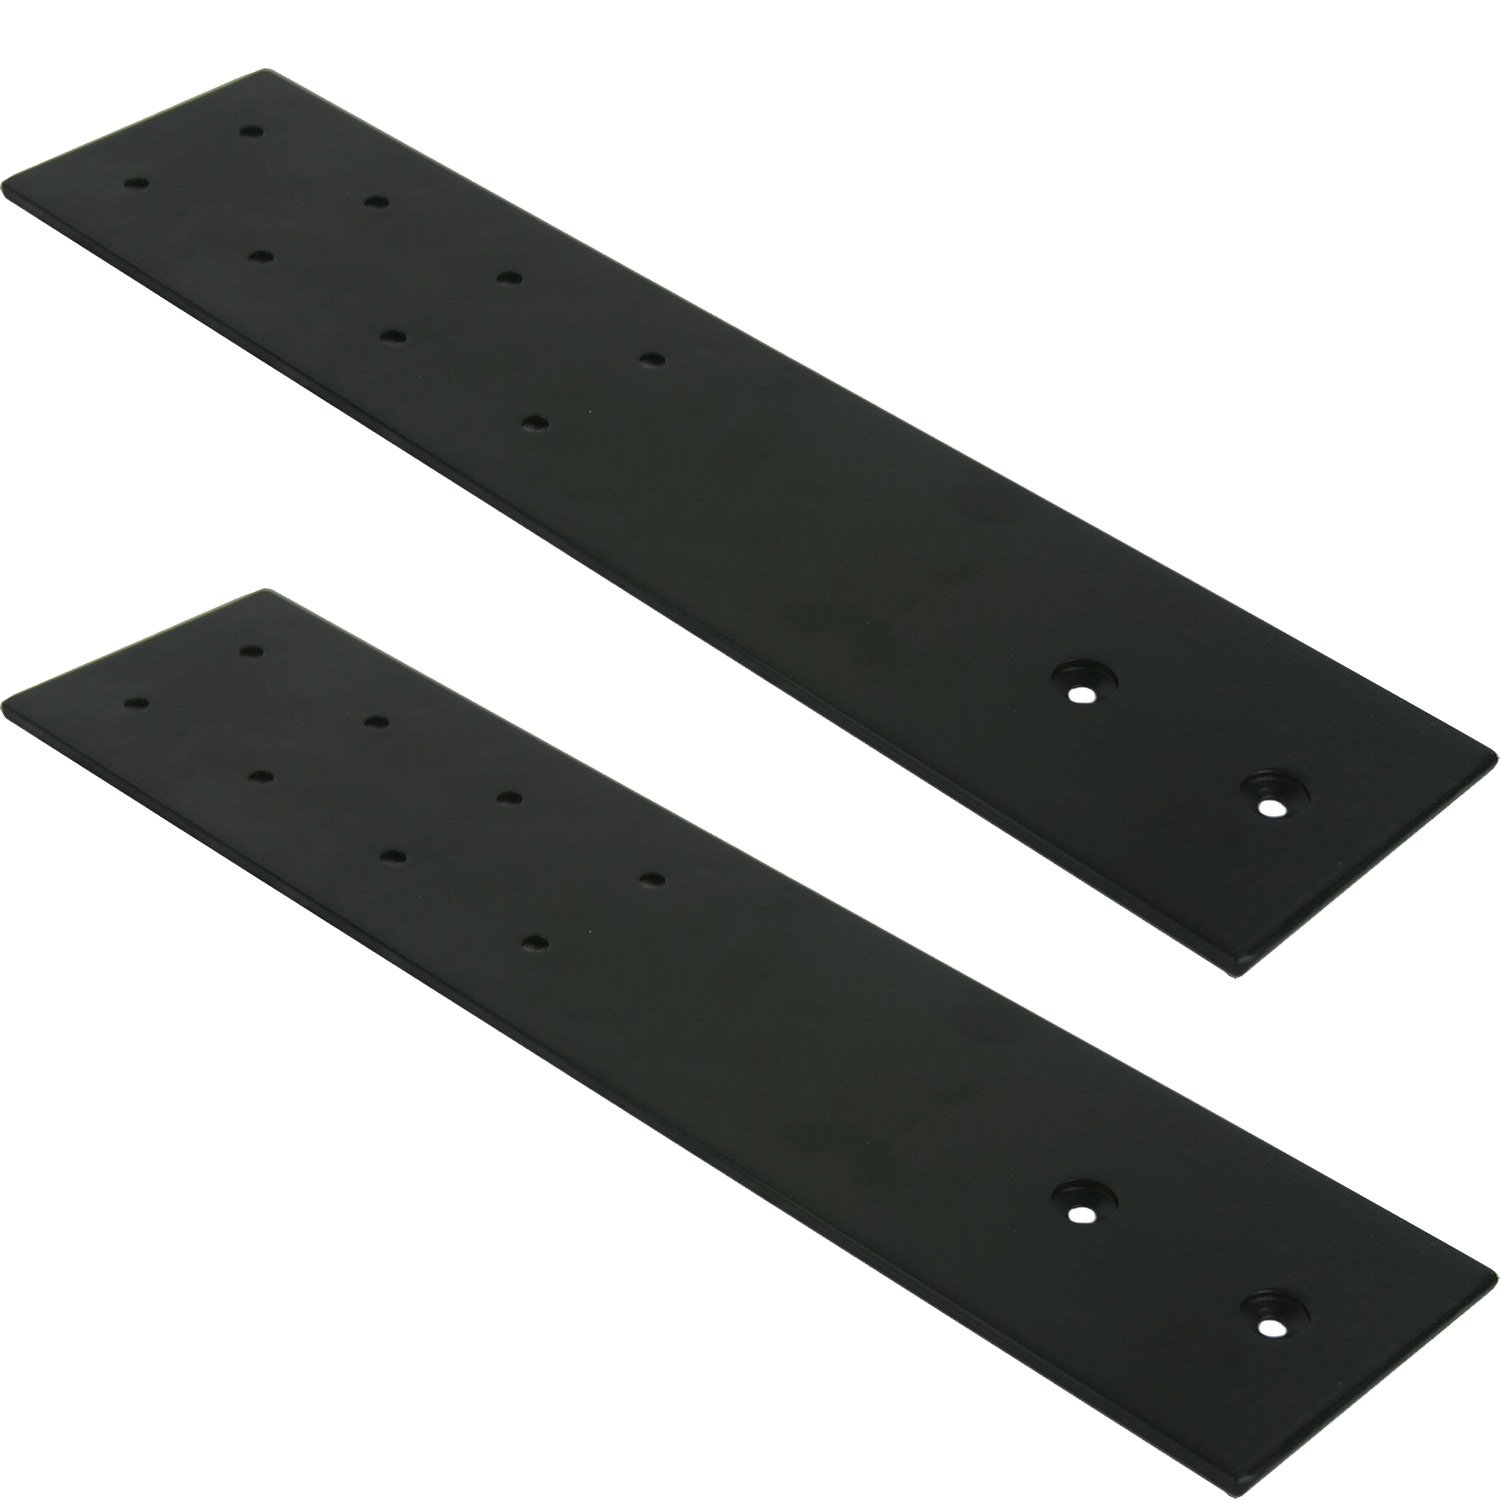 FastCap 09394-BL 3-1/2-inches x 16-inches Black SpeedBrace Stealth 300LB, 2-Pack